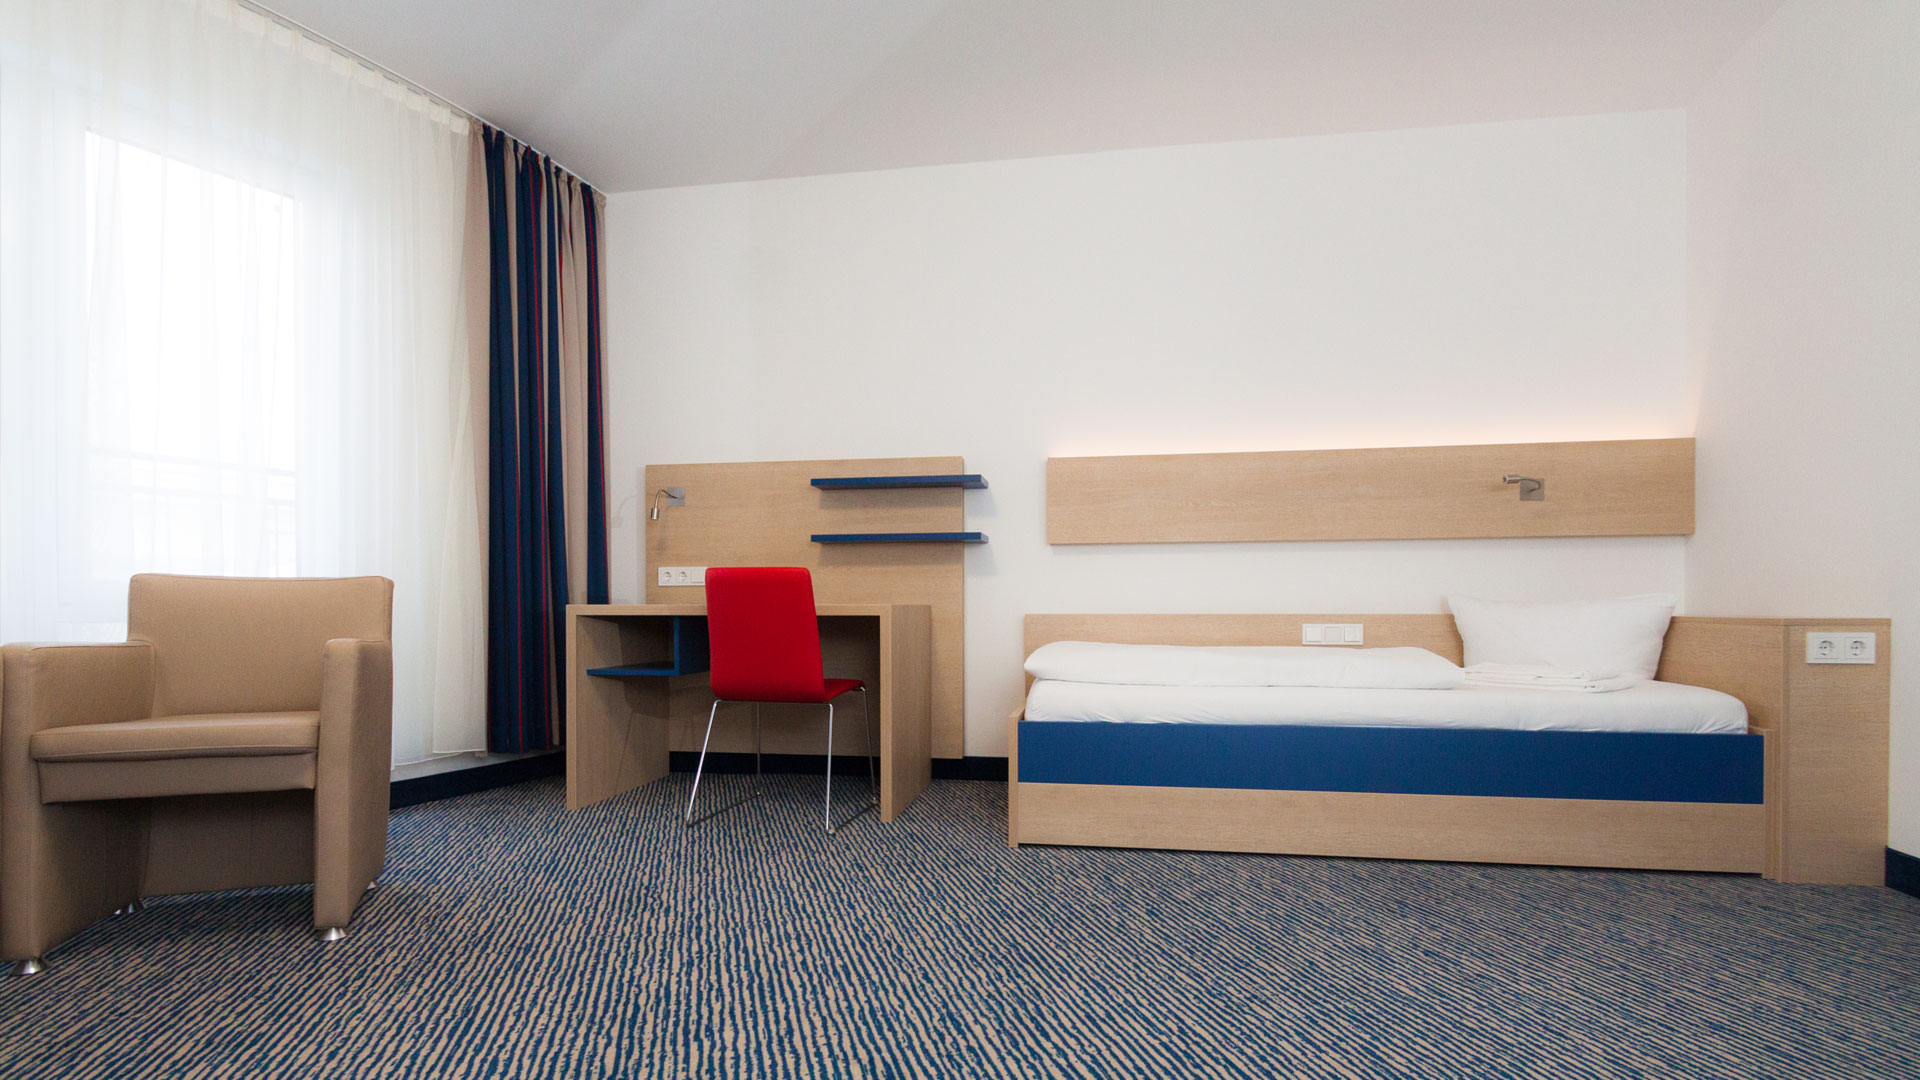 Accommodation: Example of a single room in the student residence